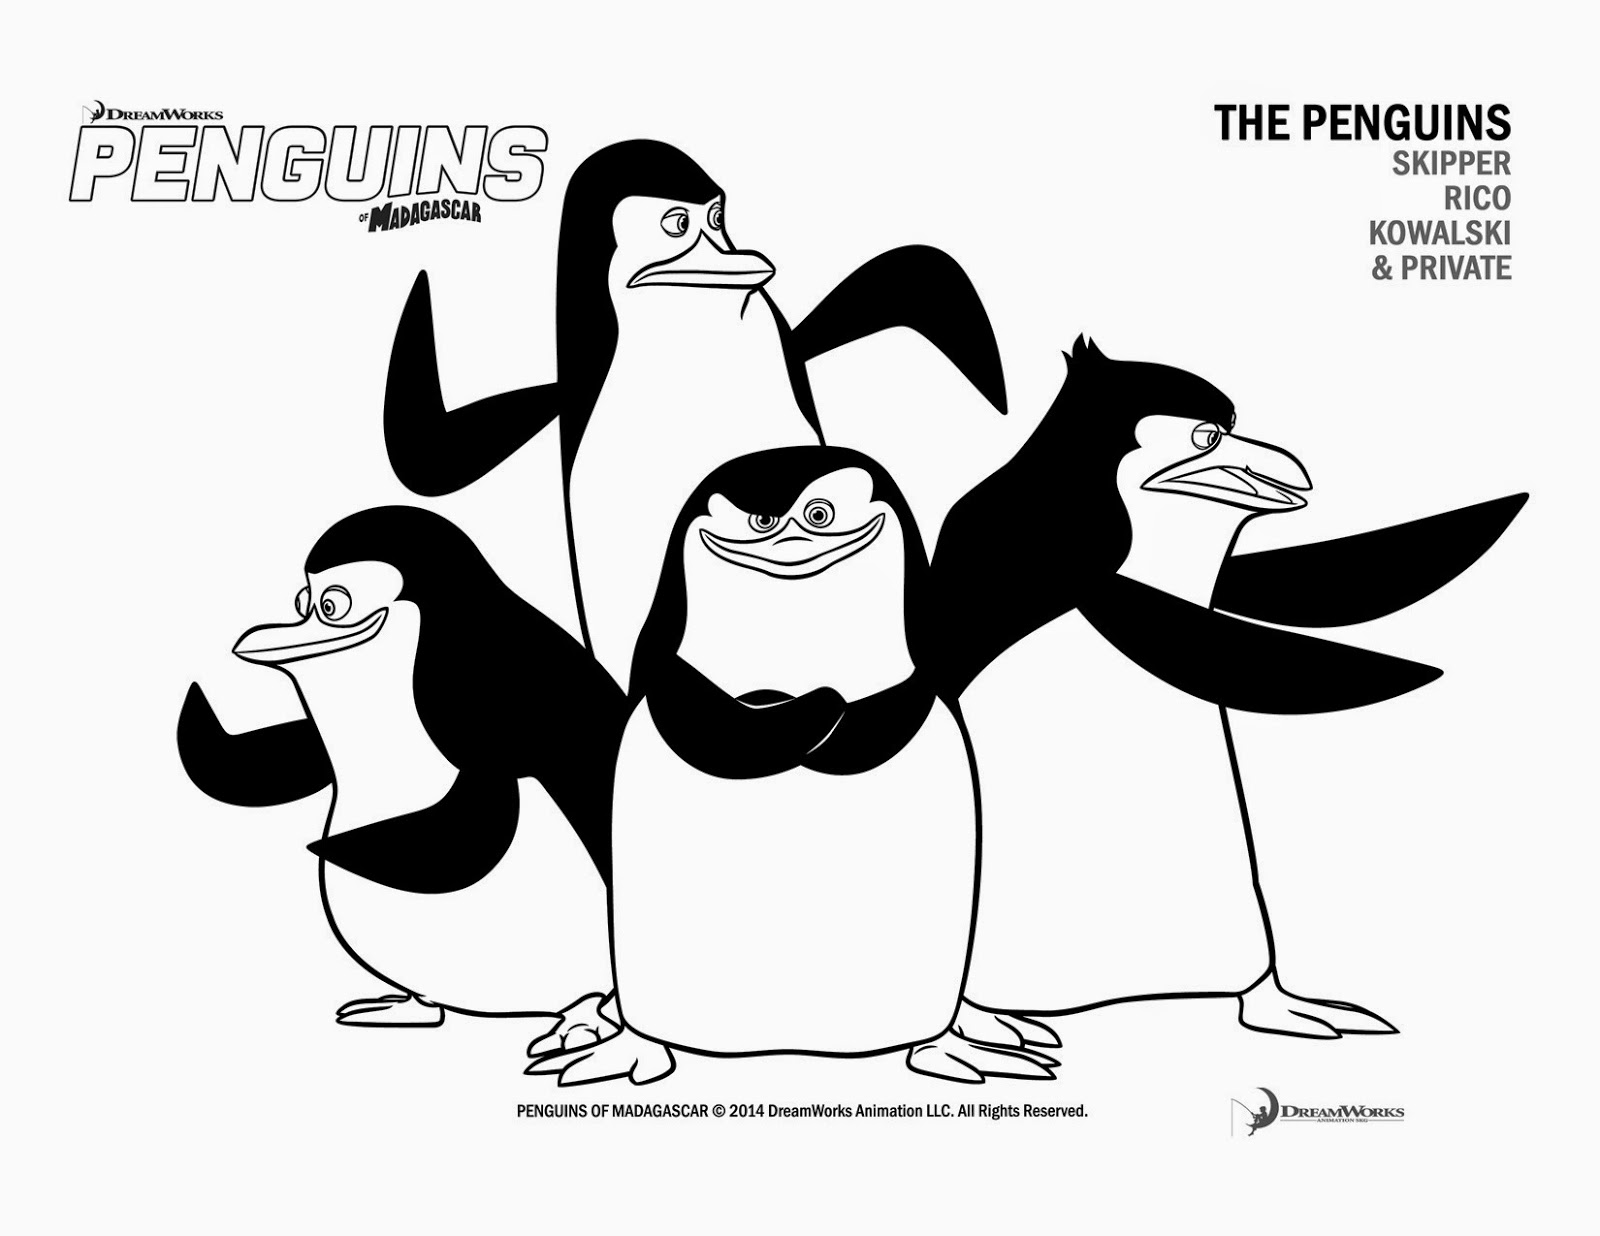 Penguins of madagascar dave printable coloring pages